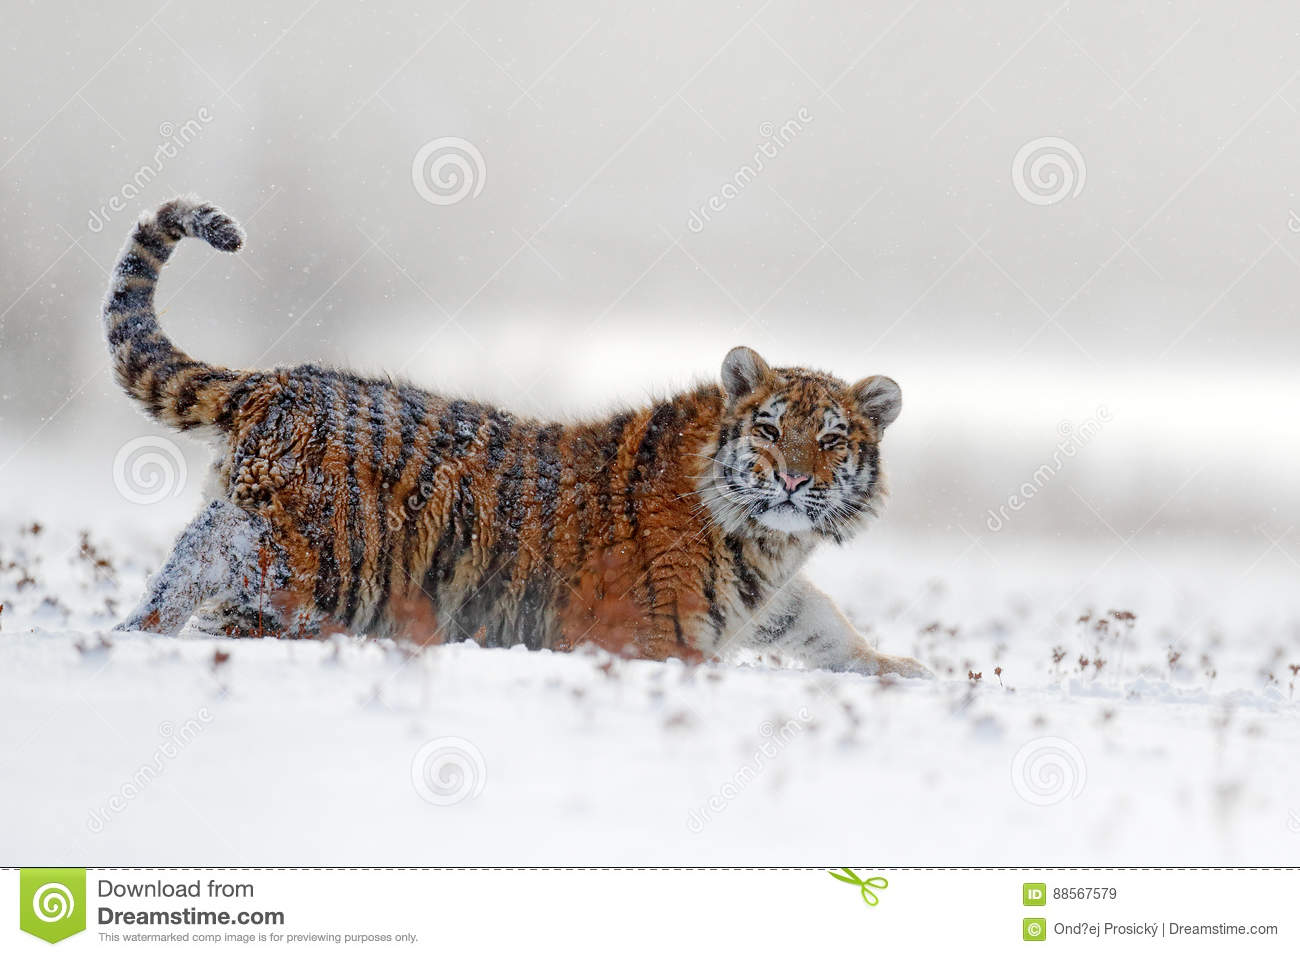 Face fixed tiger look. Siberian tiger in snow fall. Amur tiger running in the snow. Action wildlife winter scene with danger anima